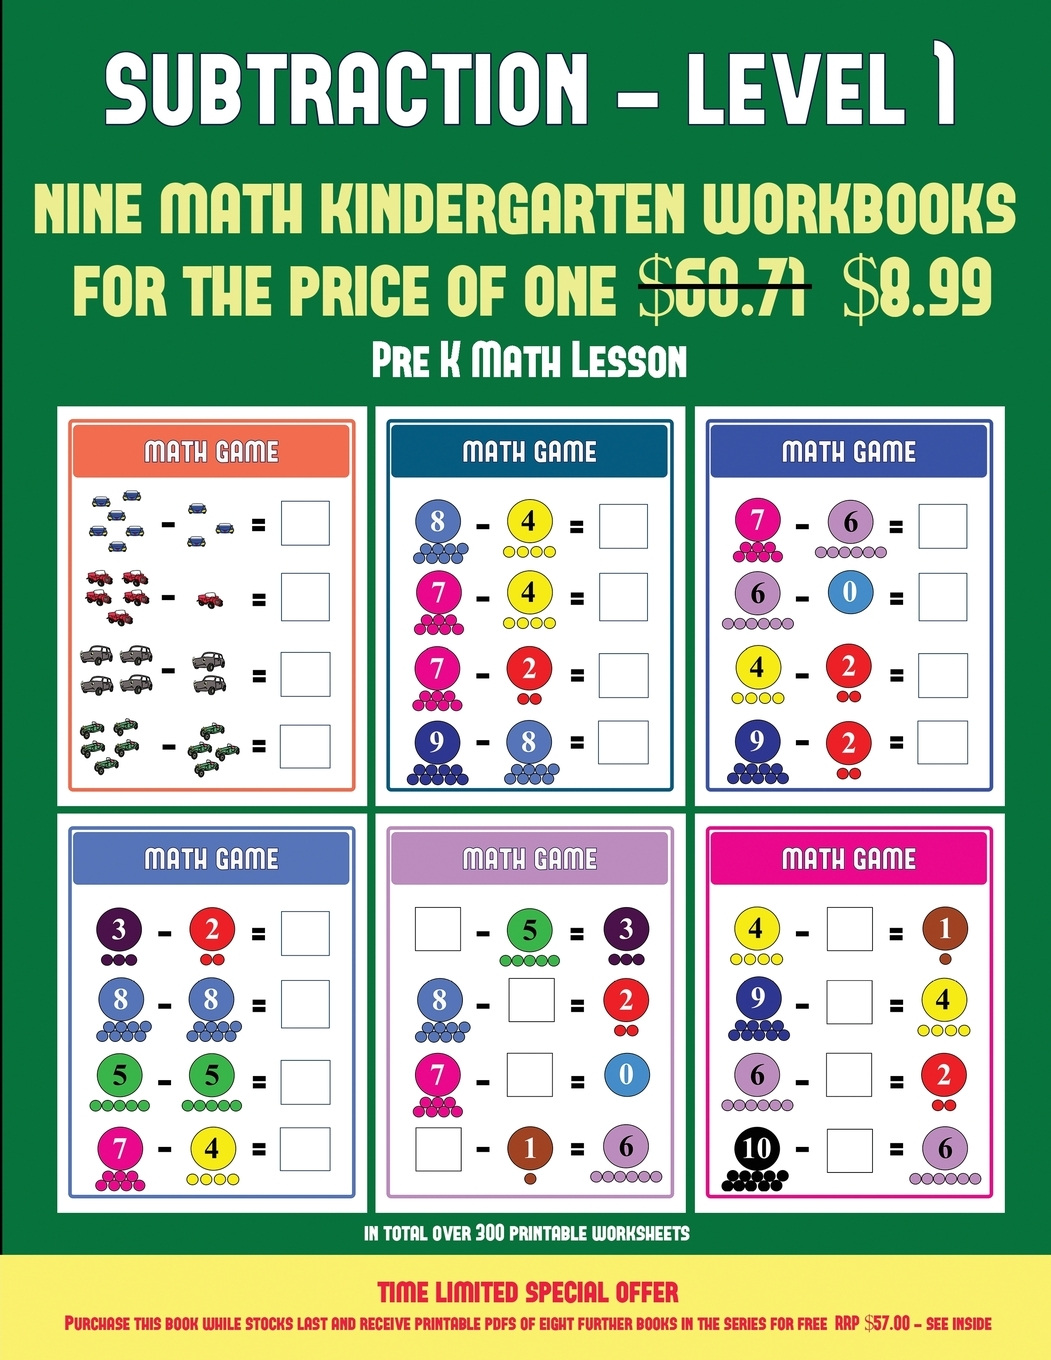 Pre K Math Lesson Kindergarten Subtraction Taking Away